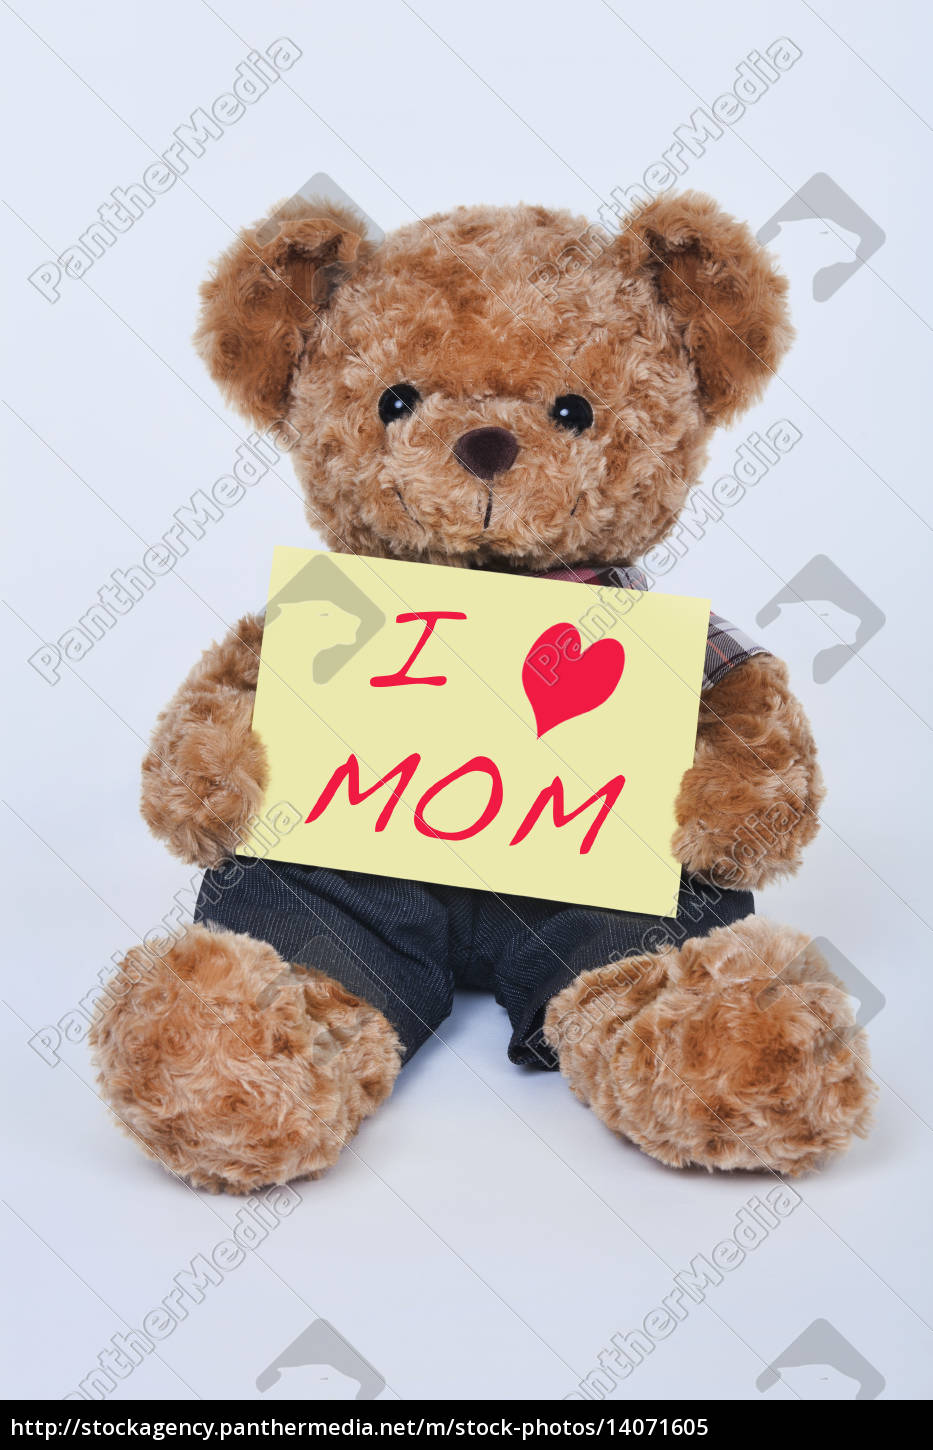 teddy, bear, holding, a, yellow, sign - 14071605